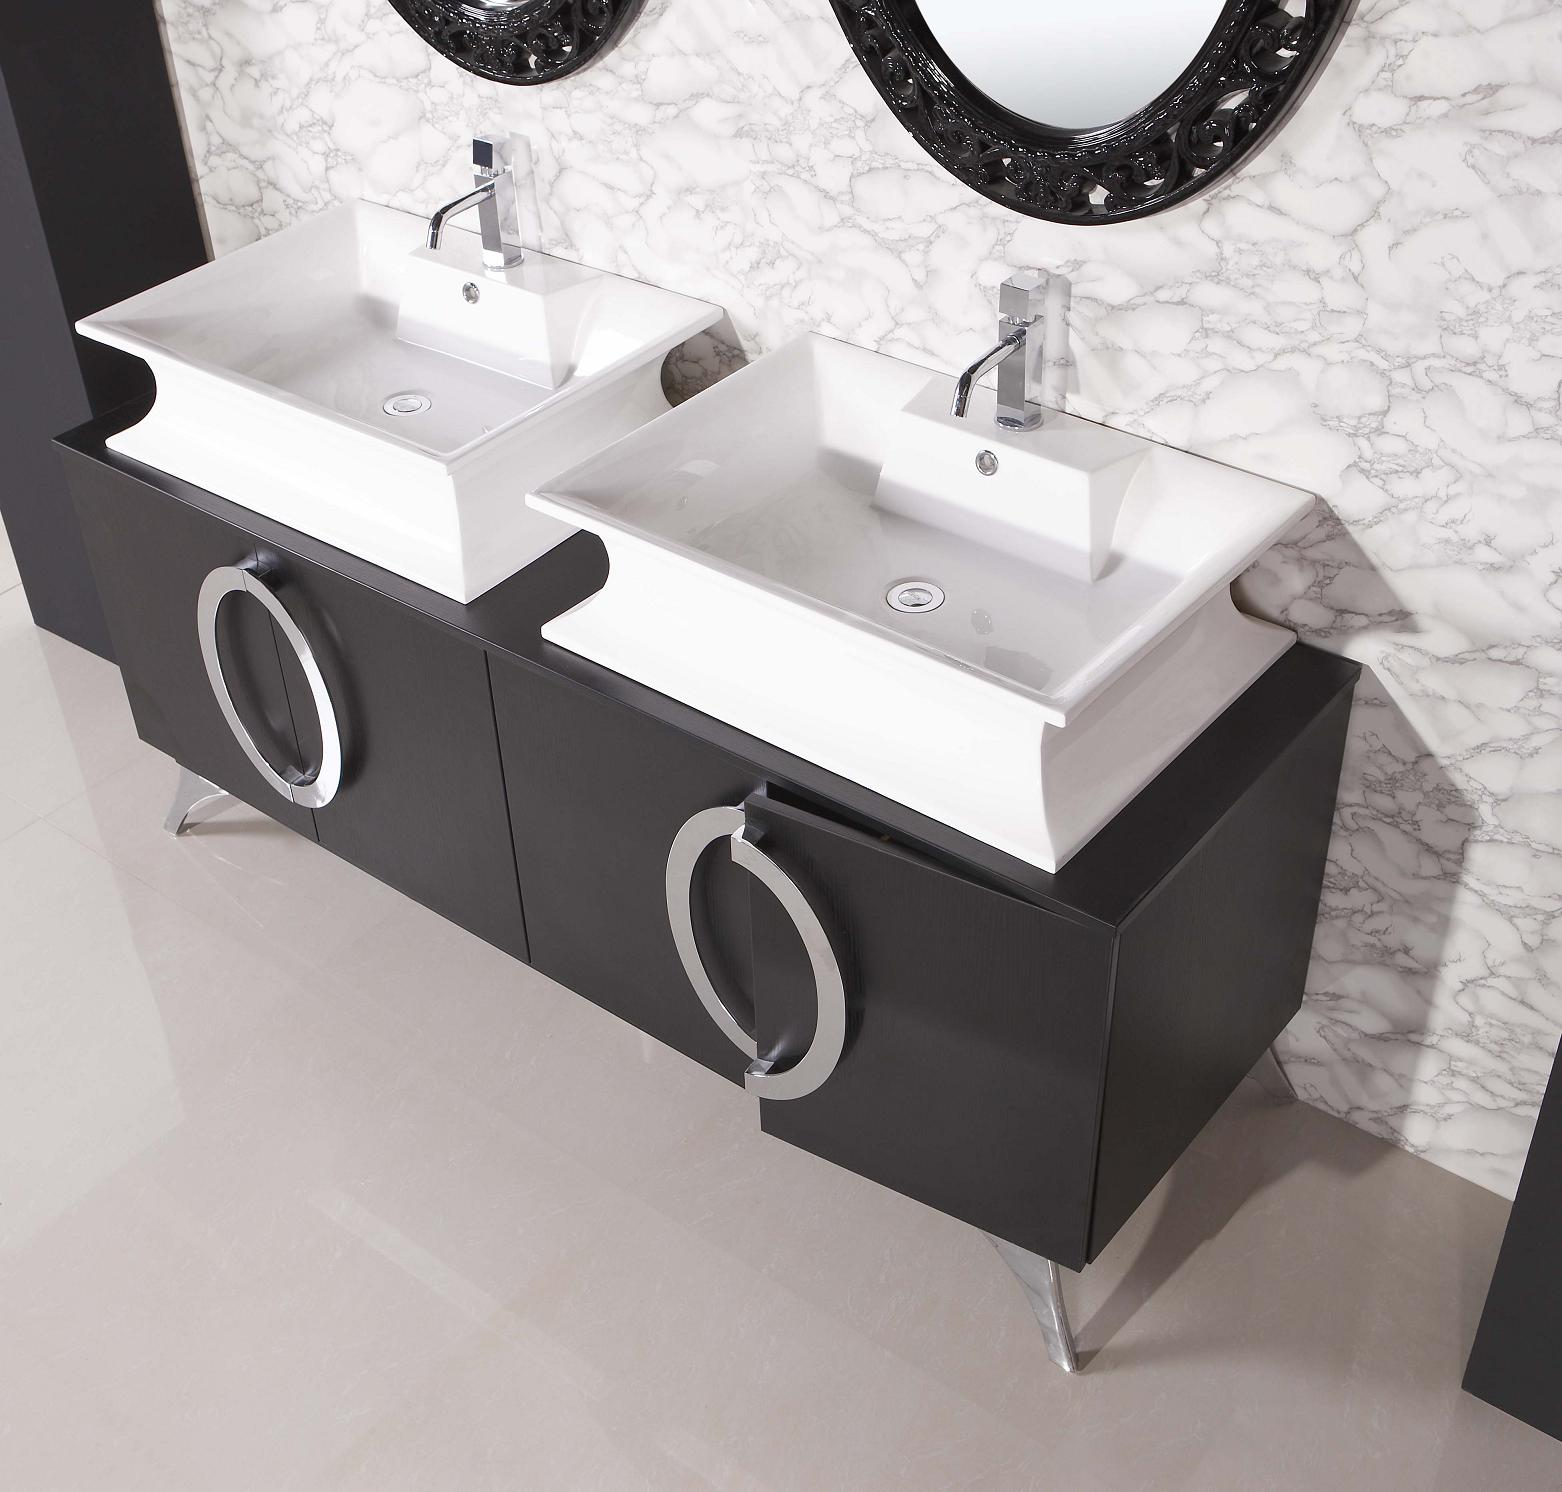 Modern bathroom vanity paris - Designer bathroom sinks basins ...